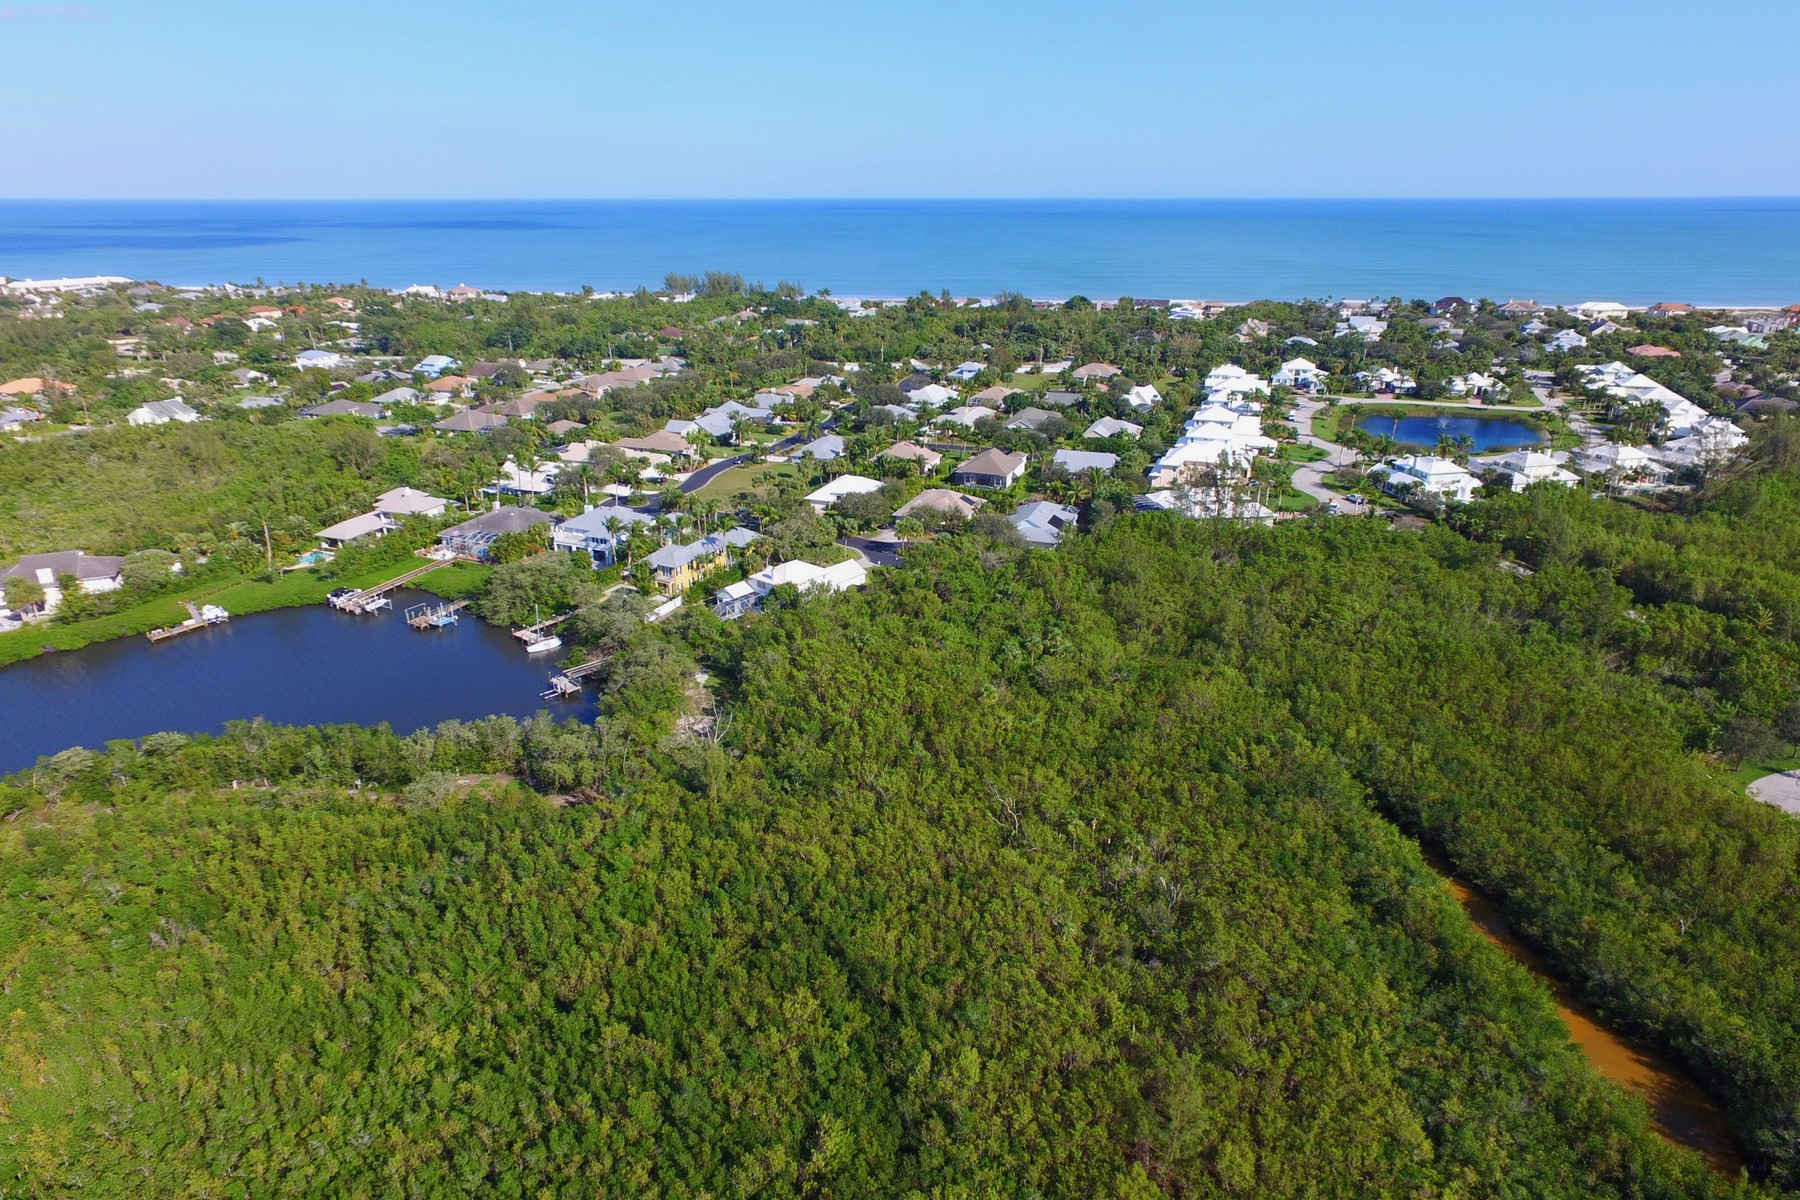 Land for Sale at Oyster Bay - Hidden Pearl Place 0 Hidden Pearl Place Vero Beach, Florida, 32963 United States